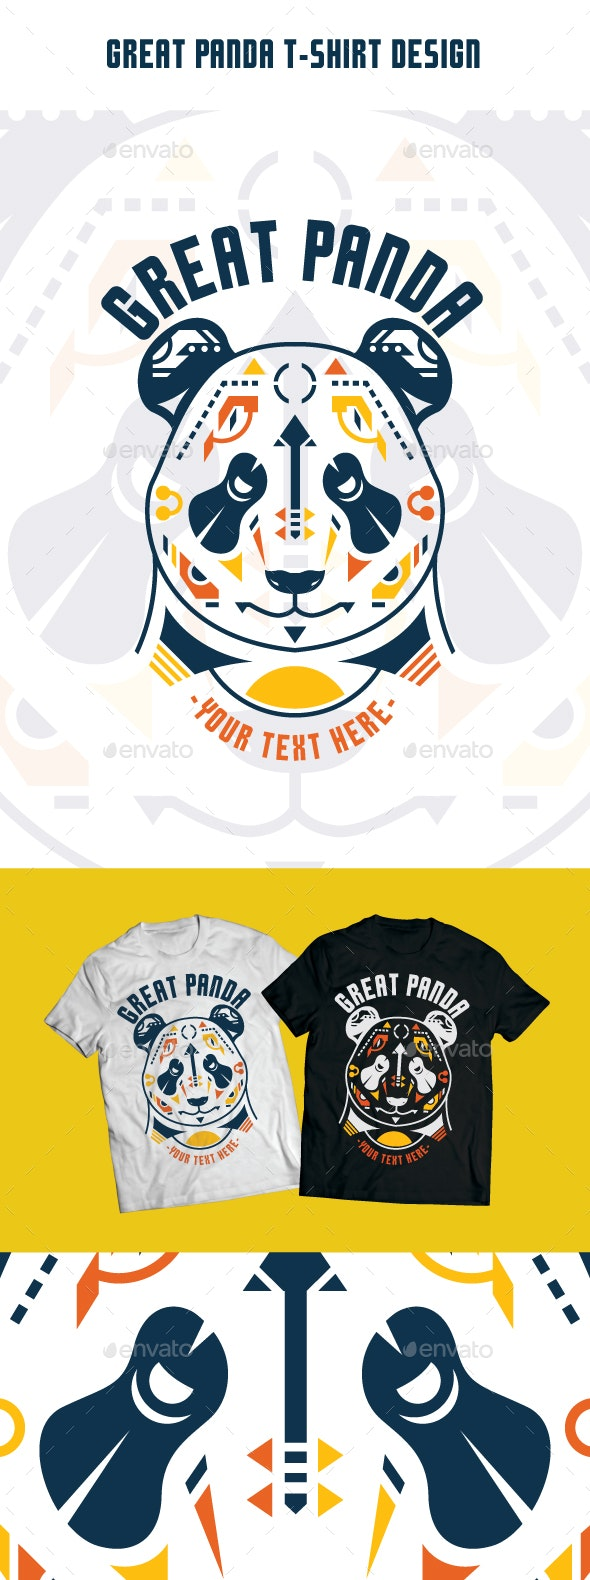 Great Panda T-Shirt Design - T-Shirts